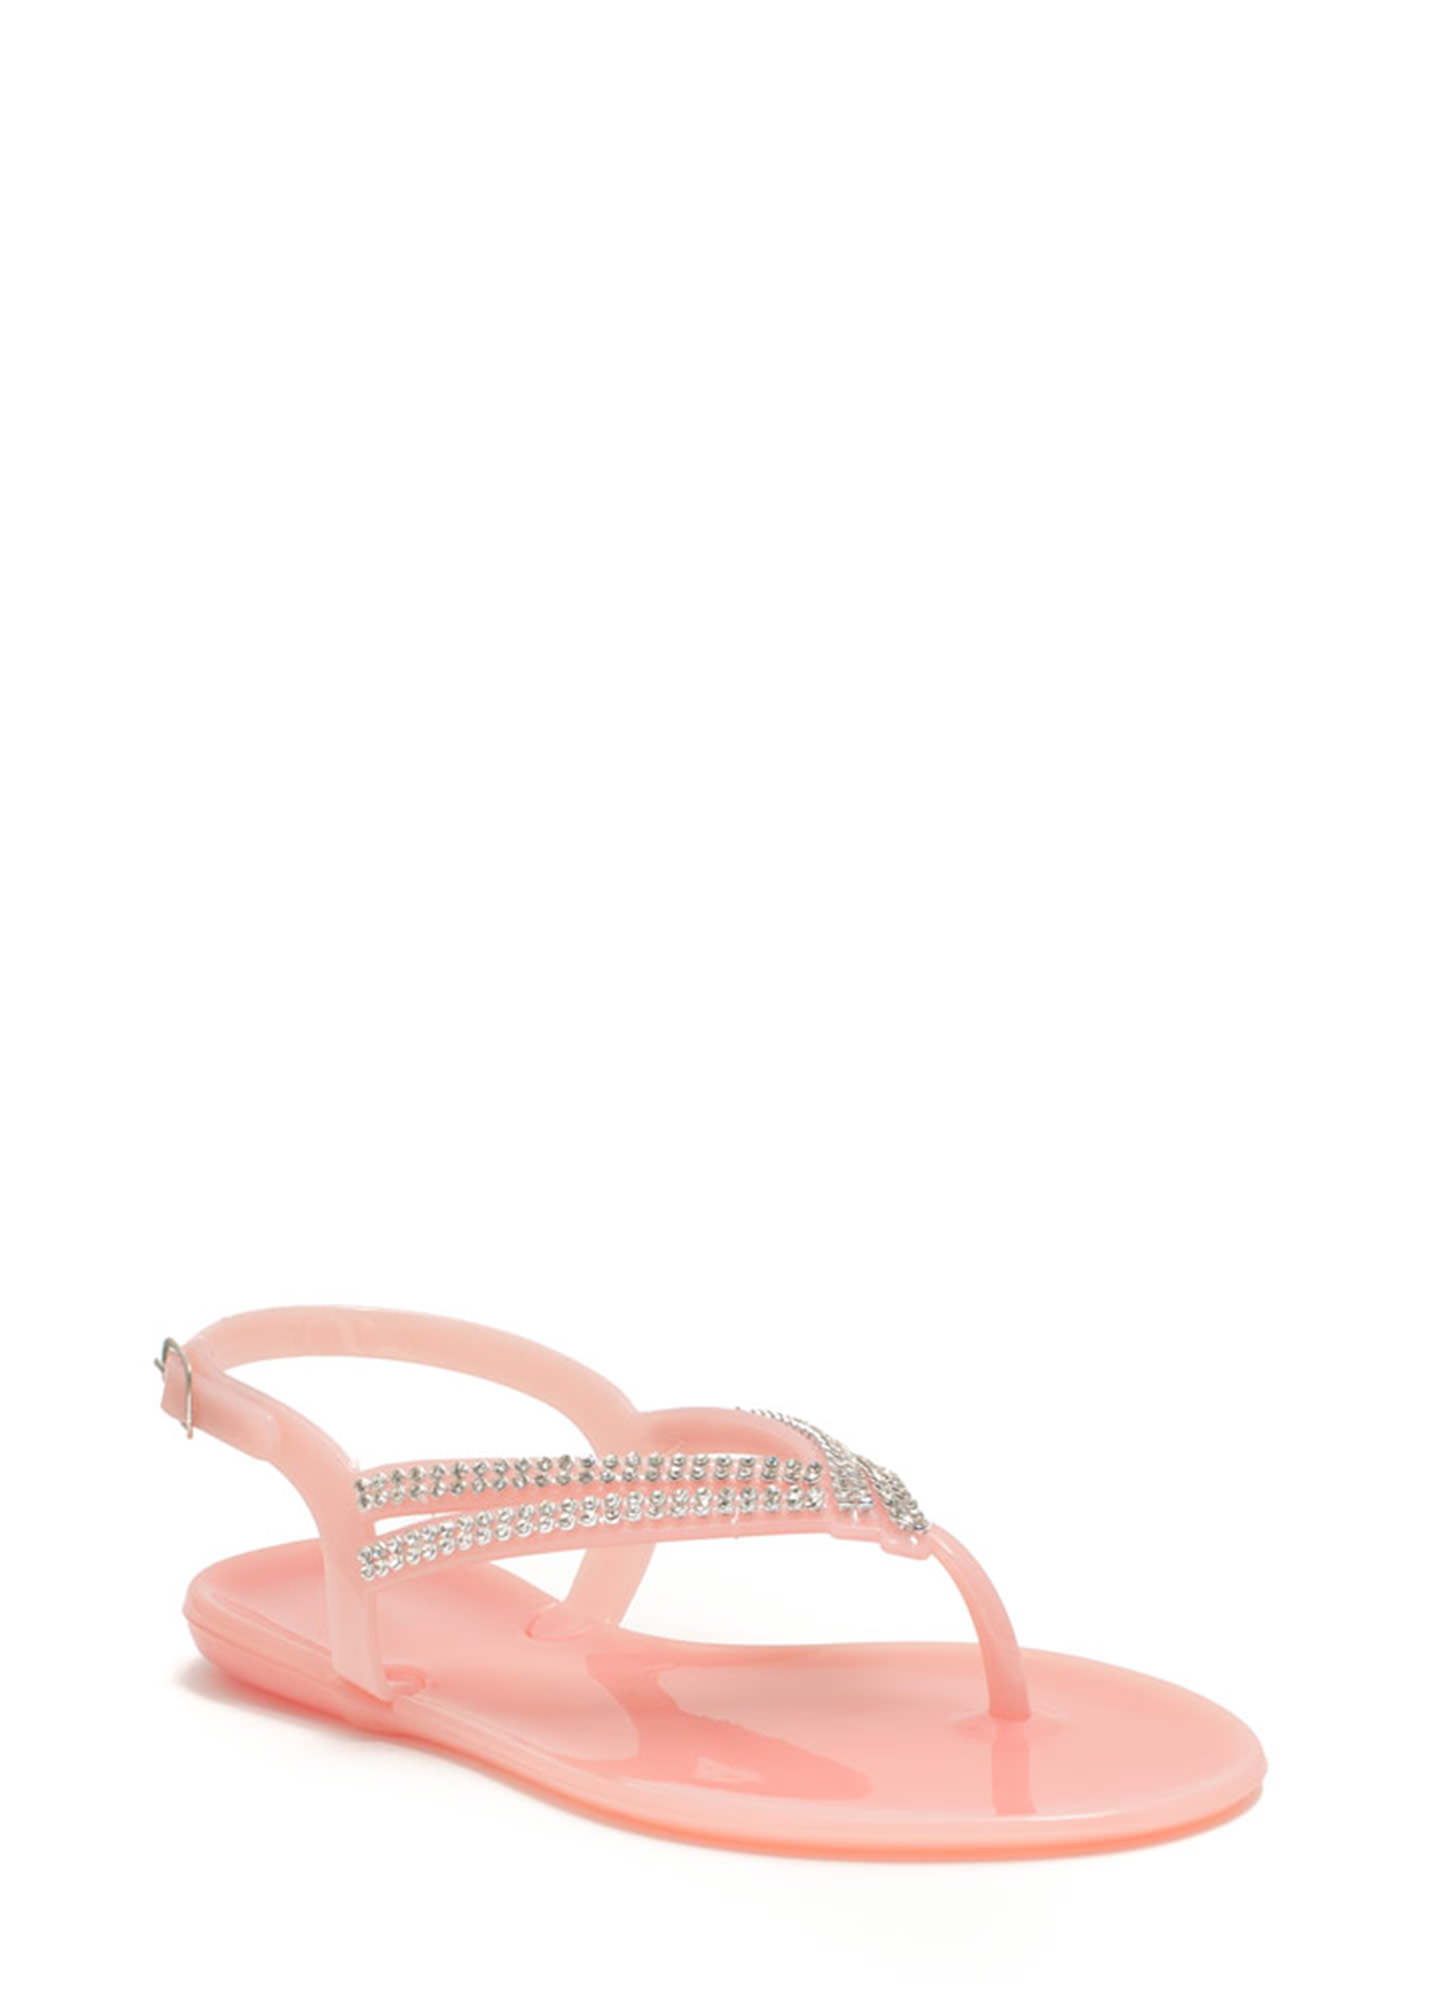 Glitzy V Strappy Jelly Sandals PINK